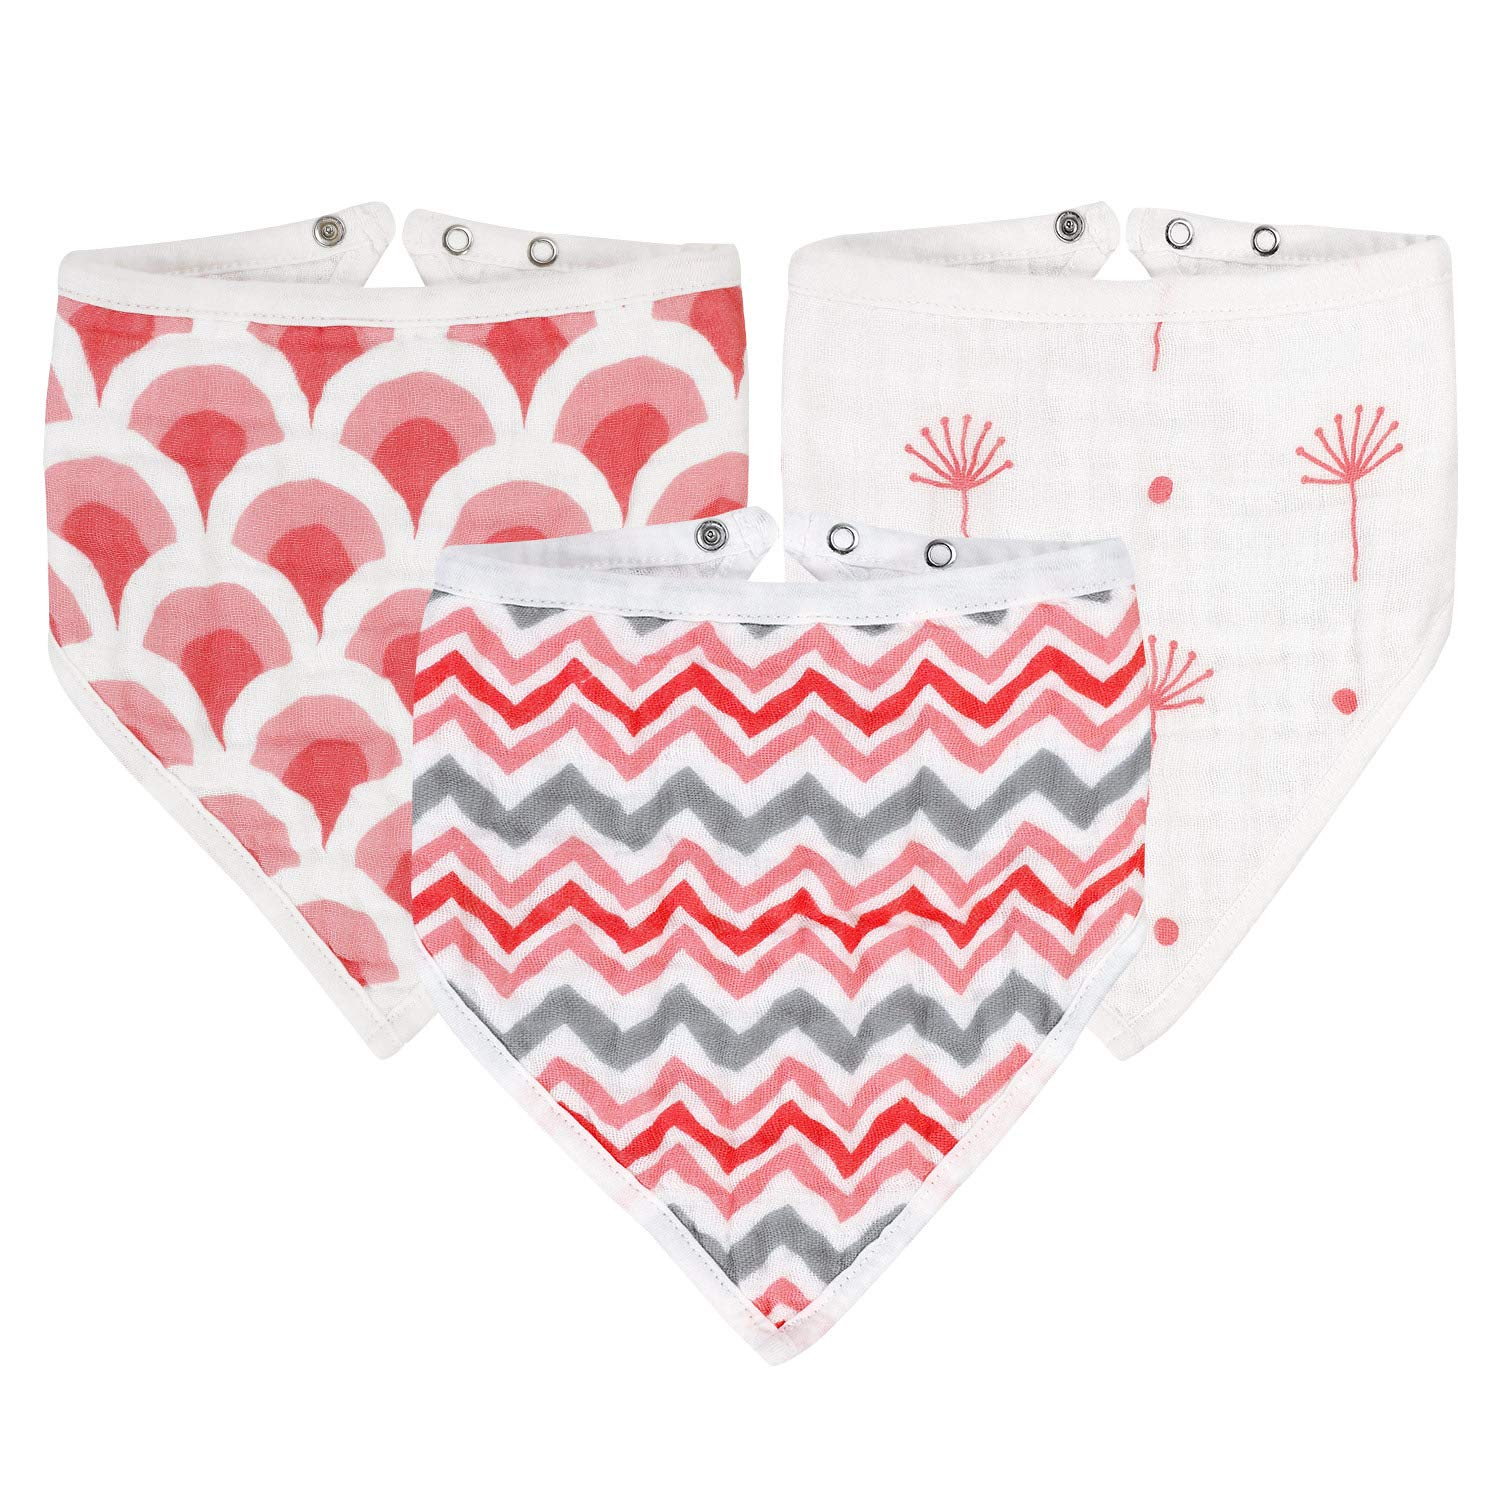 Bandana Baby Bib, Baby Girl Bibs 100% Cotton Muslin, 6 Layer Burp Cloth, Super Soft & Absorbent for Infants, Newborns and Toddlers, Adjustable with Snaps, 3 Pack (Style One)